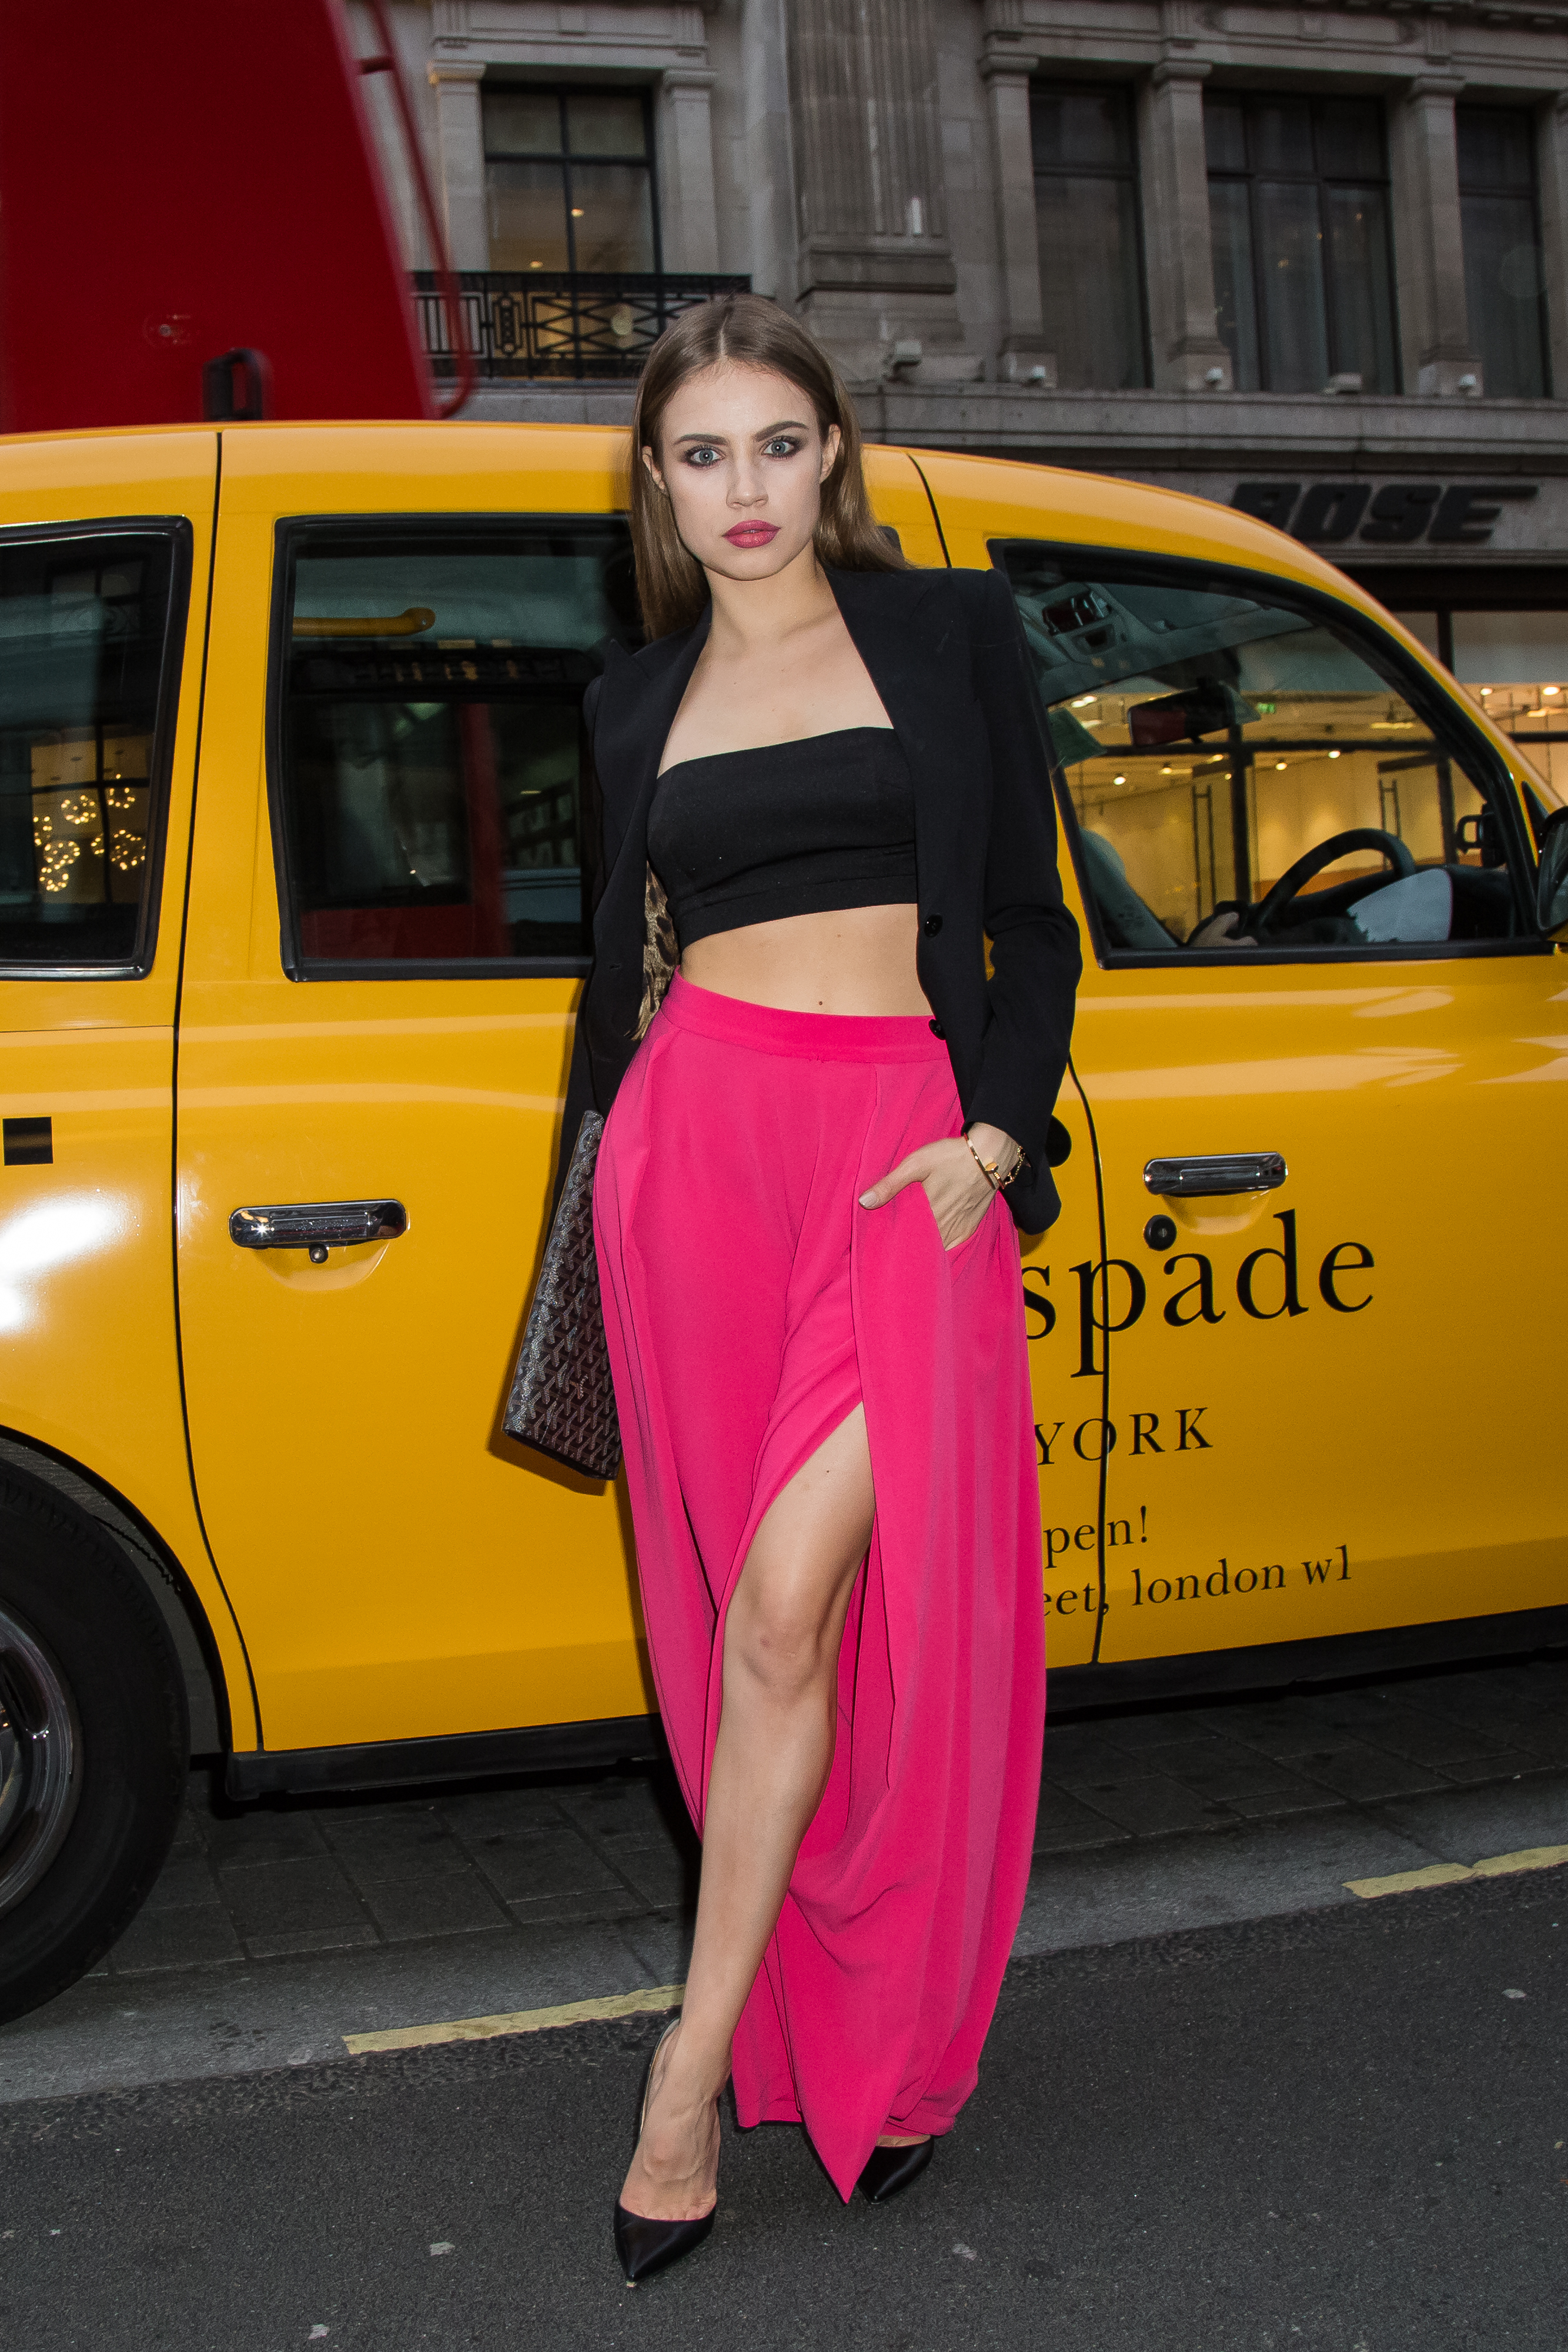 "<div class=""meta image-caption""><div class=""origin-logo origin-image ap""><span>AP</span></div><span class=""caption-text"">Xenia Tchoumitcheva poses for photographers upon arrival at the Kate Spade New York flagship store opening party in London, Thursday, April 21, 2016. (Vianney Le Caer/Invision/AP)</span></div>"